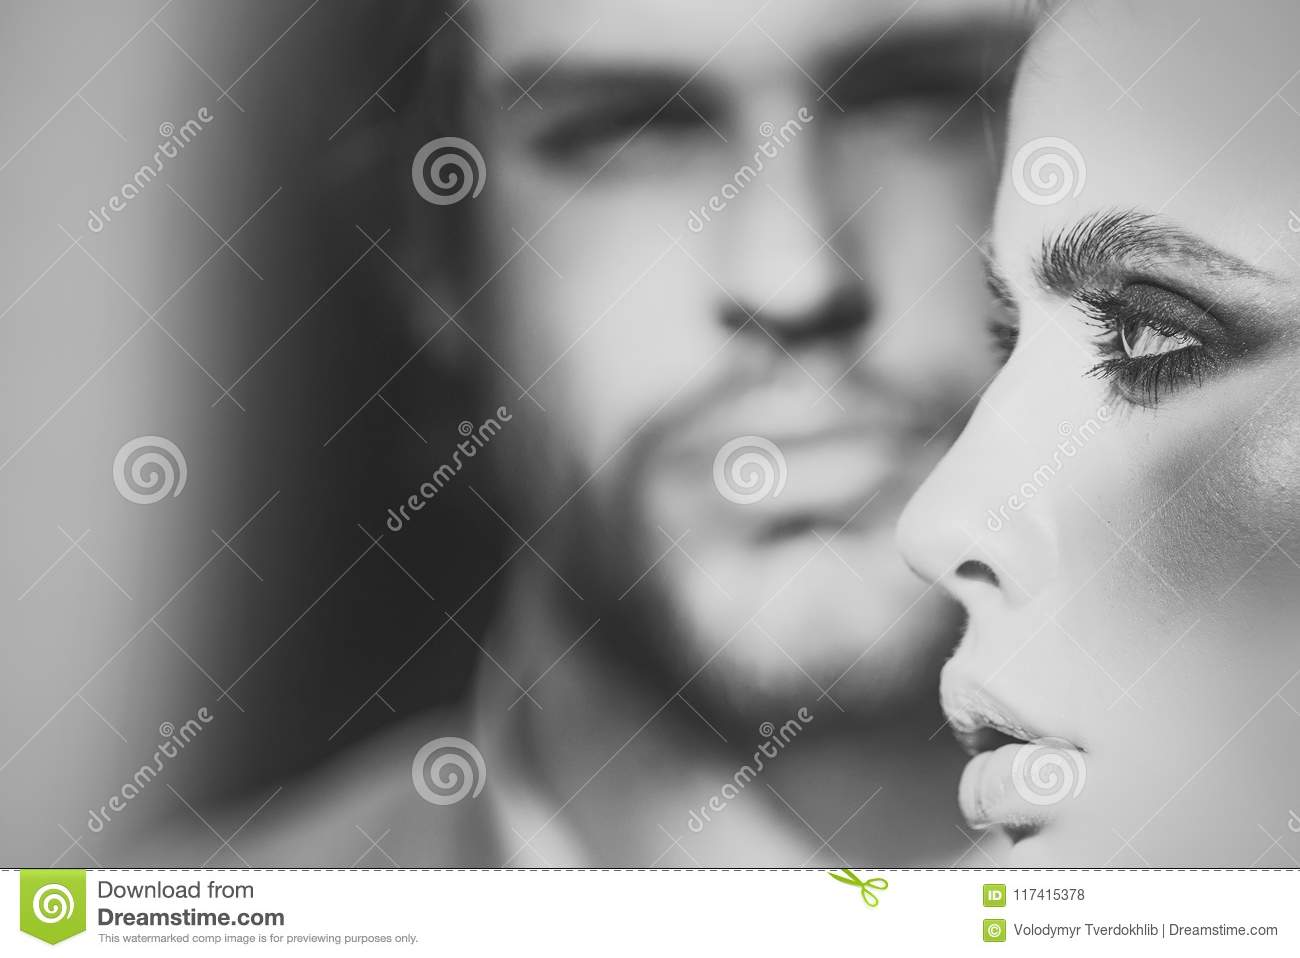 Woman face beauty. Woman face profile with blurred man on background